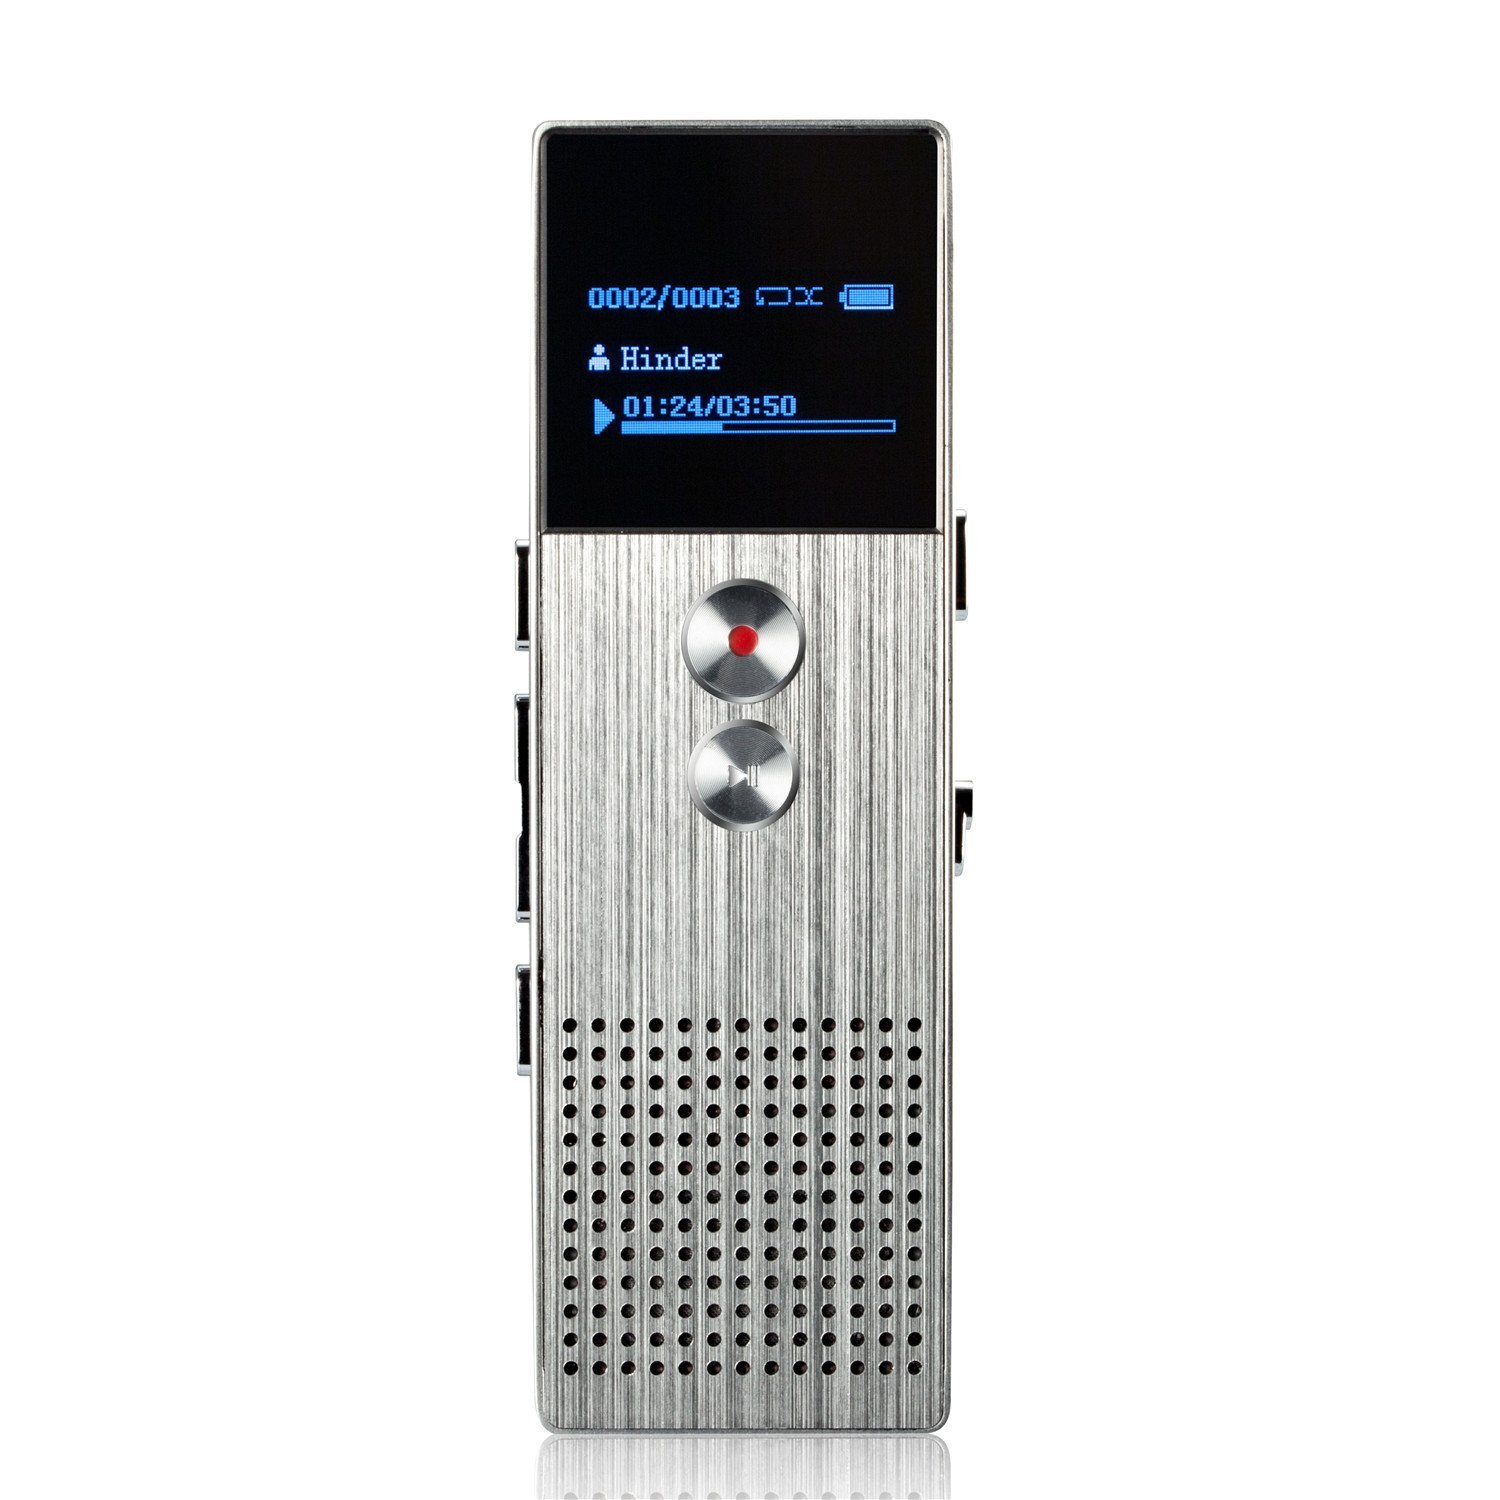 AGPtEK M23 8GB Digital Voice Recorder, MP3 Player with Built-in Speaker and FM radio options, Silver